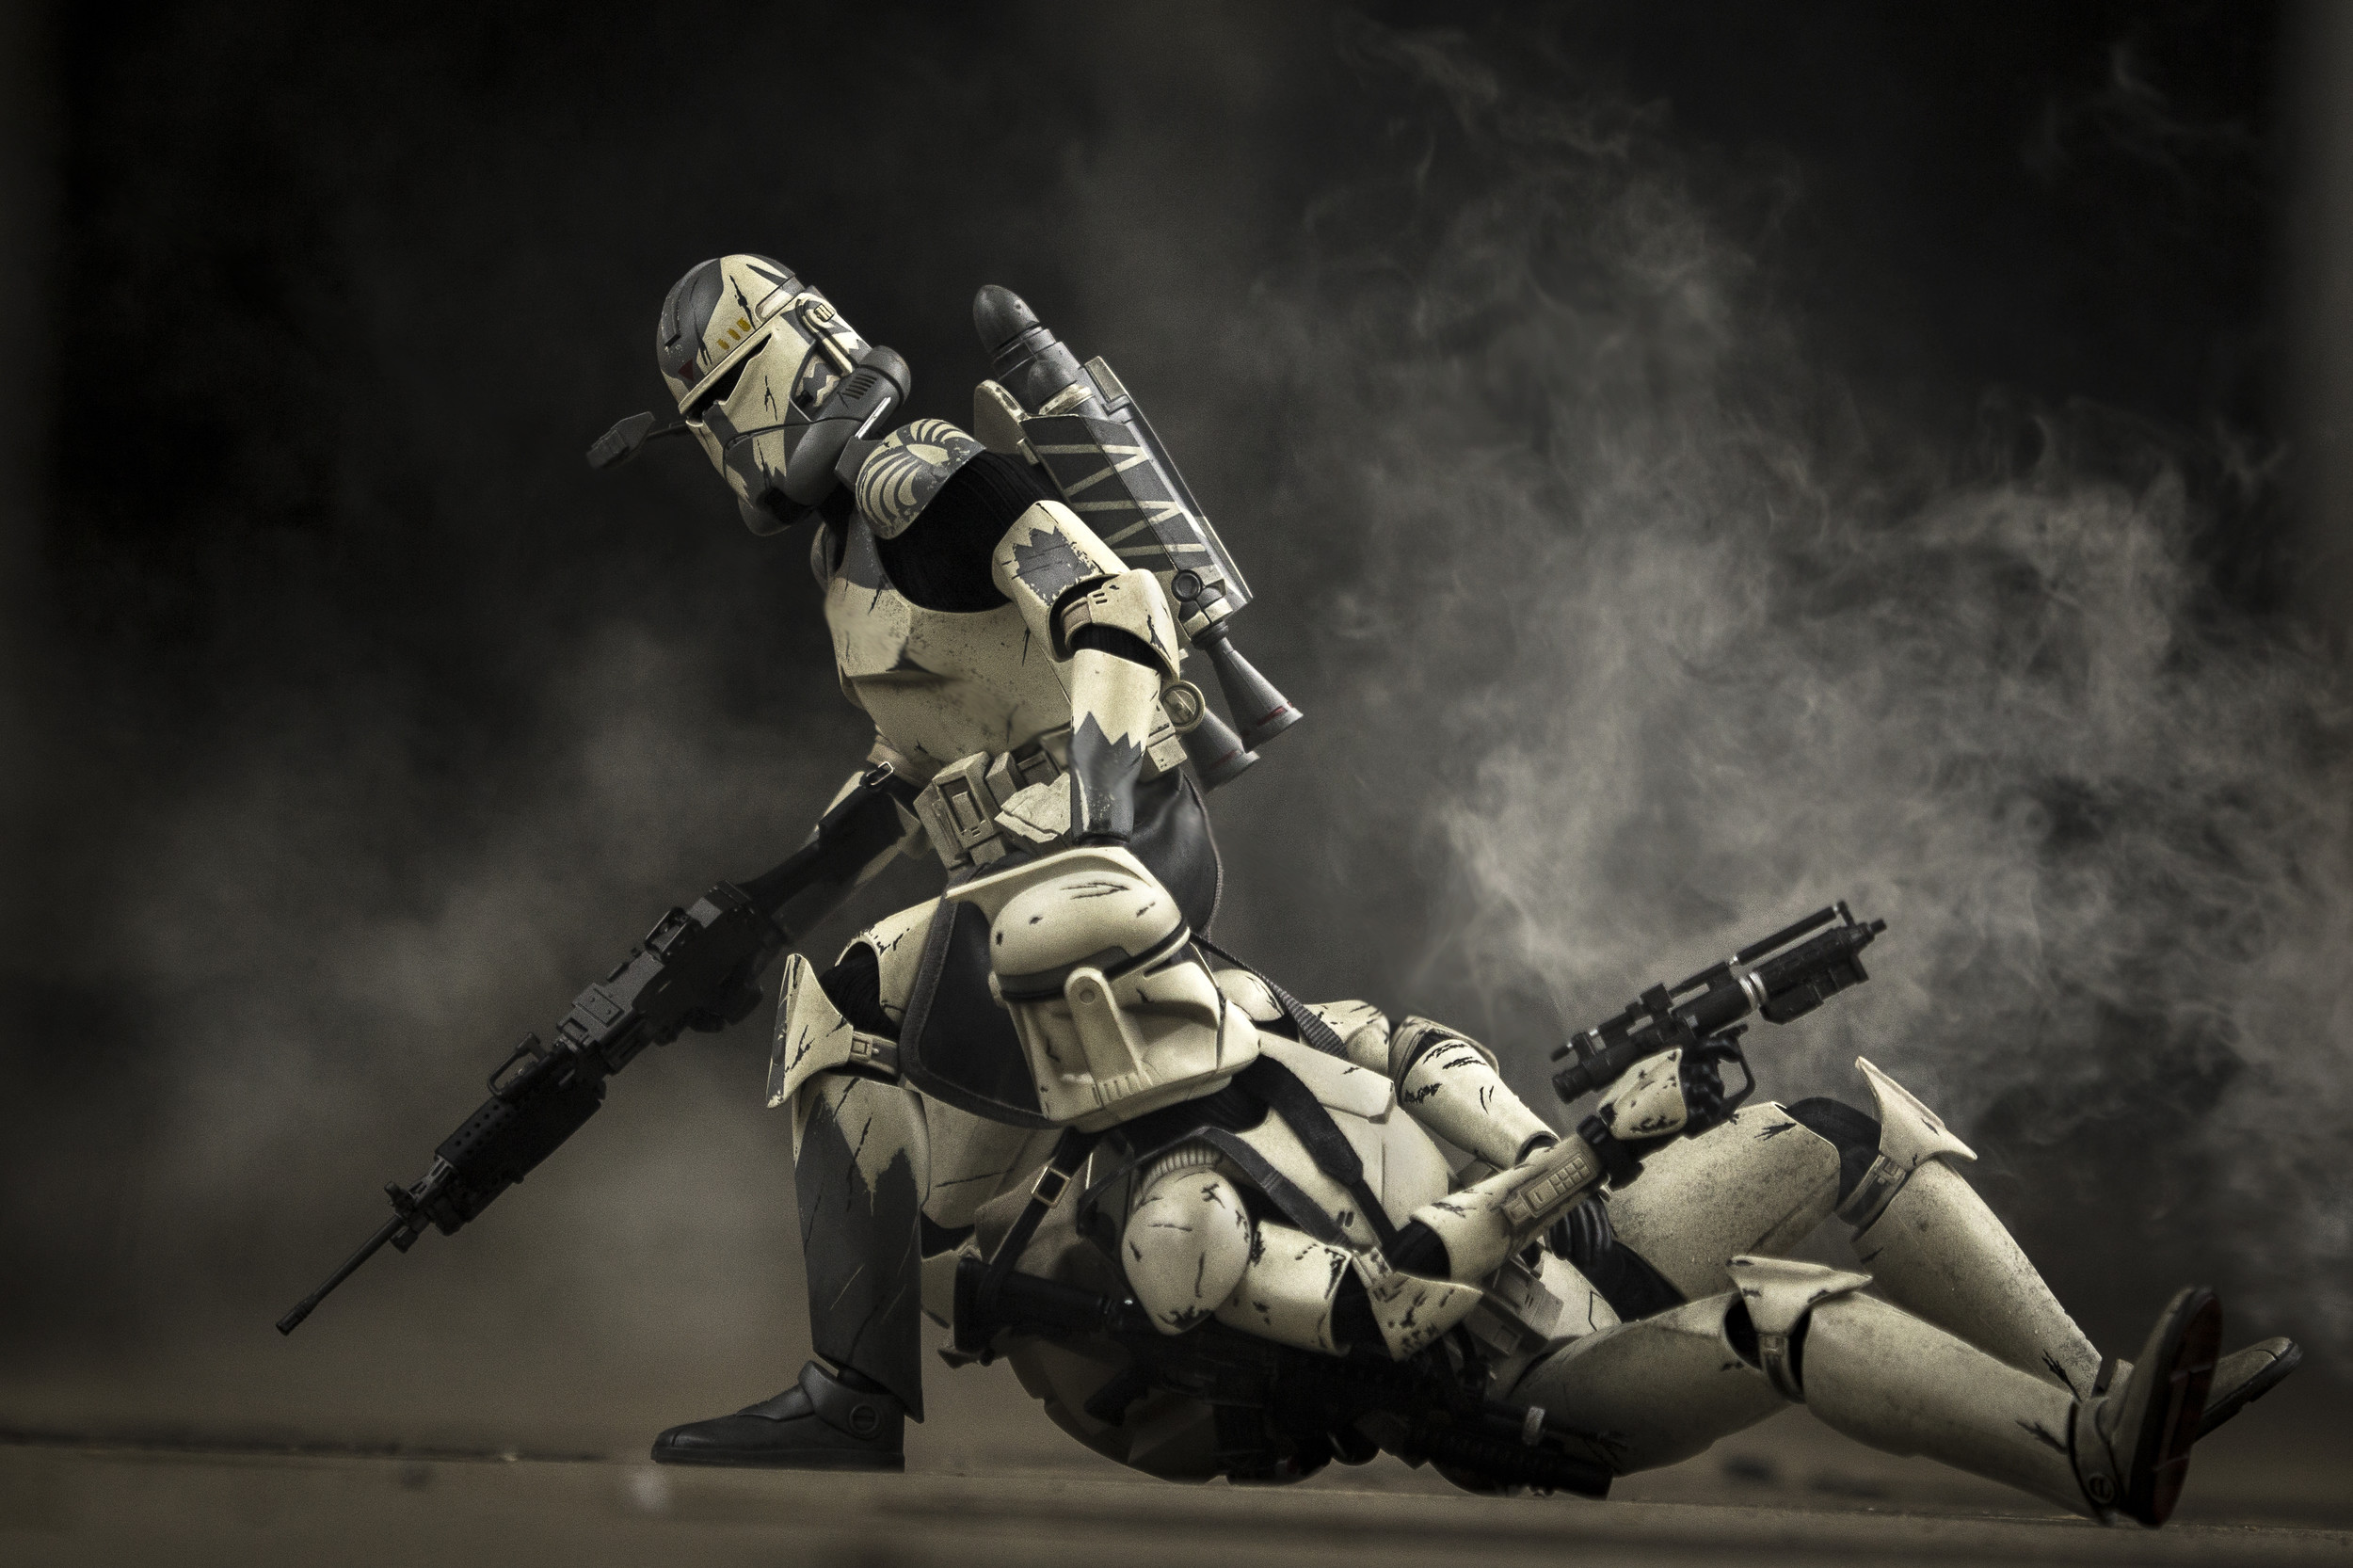 501st Clone Trooper Wallpaper 64 Images